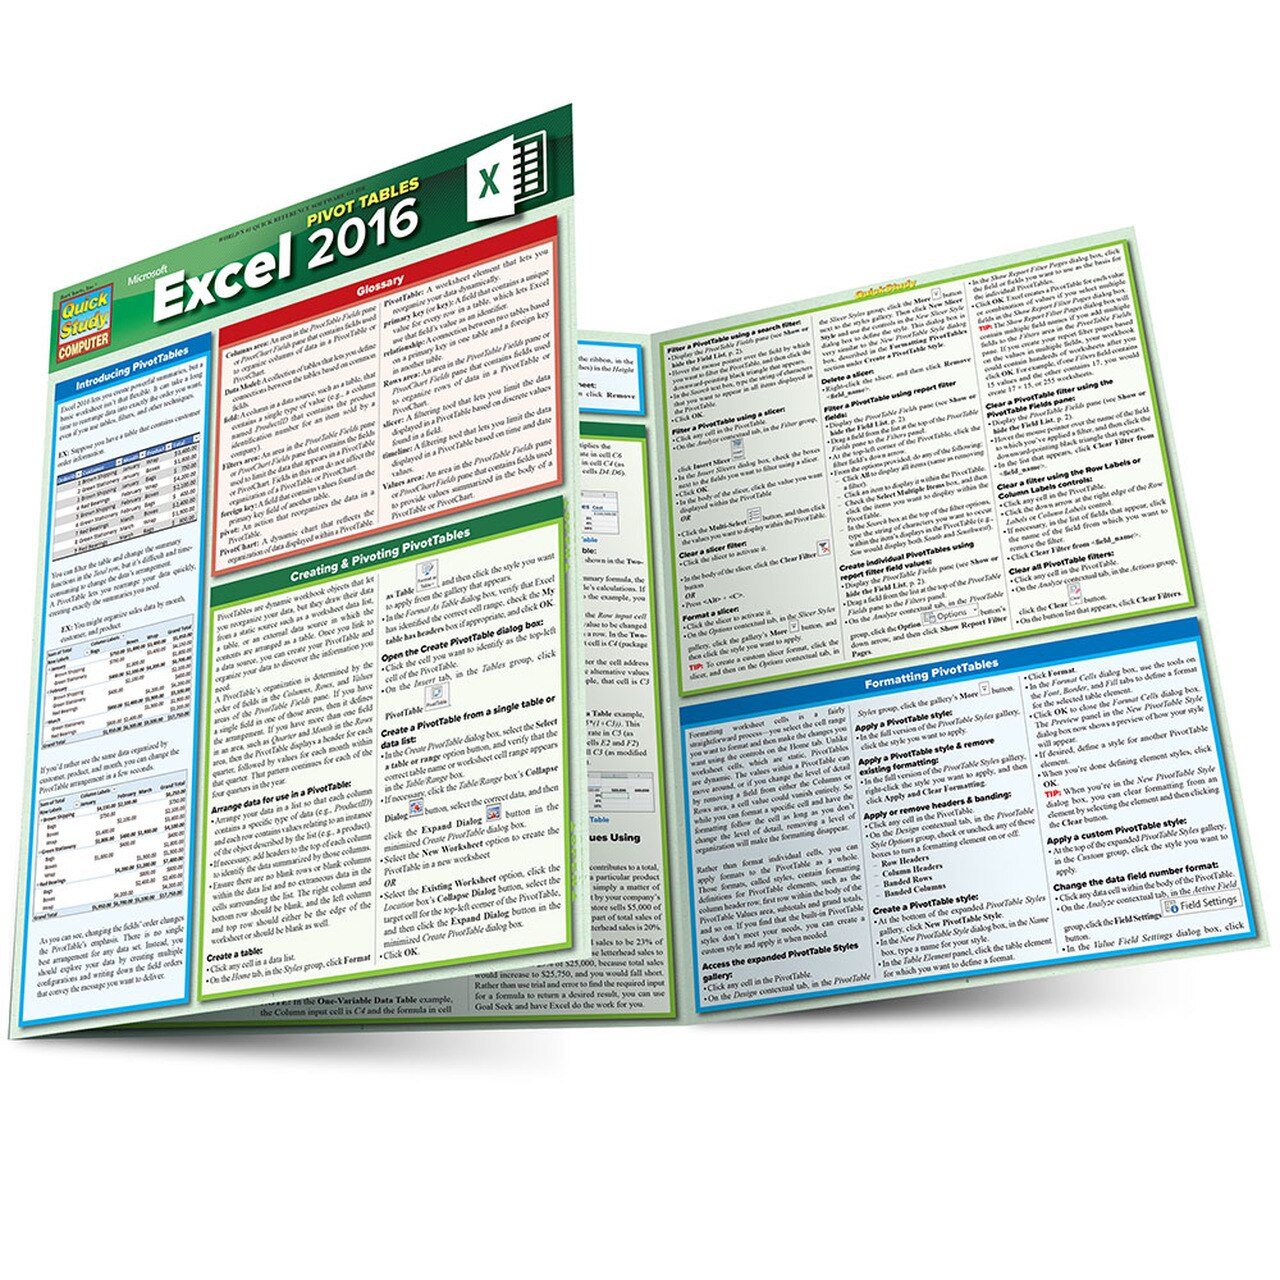 QuickStudy MS Excel 2016: Pivot Tables Laminated Reference Guide